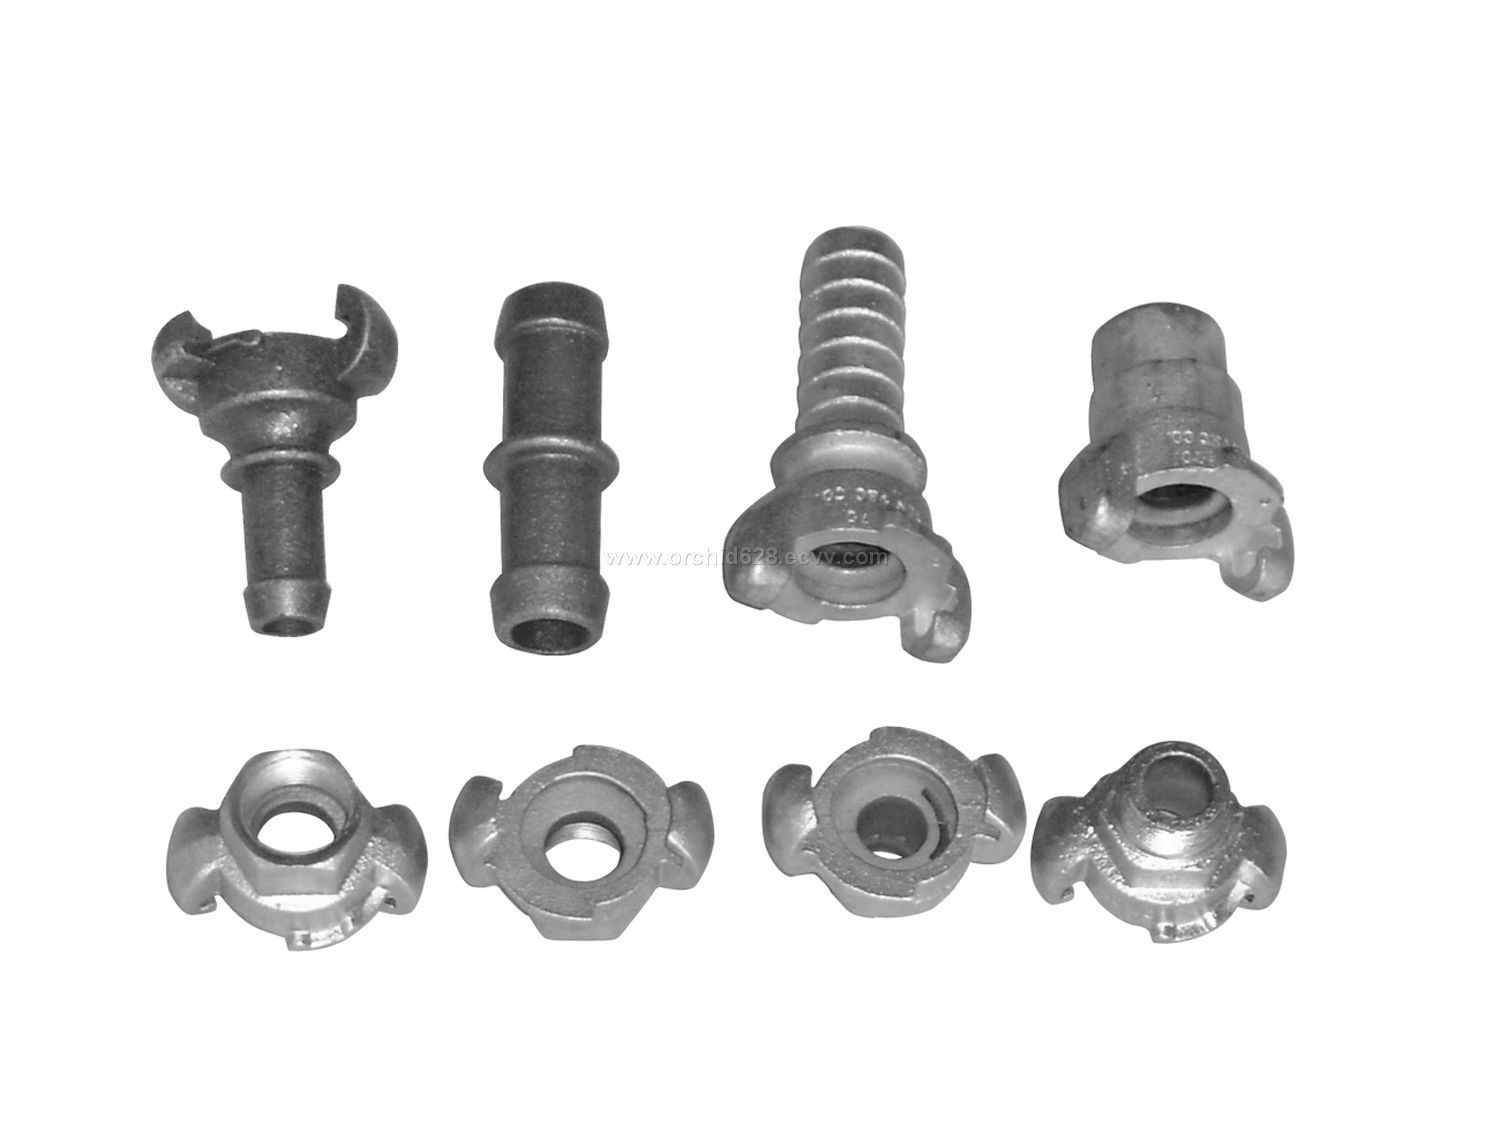 Ductile iron speedy pipe fittings purchasing souring